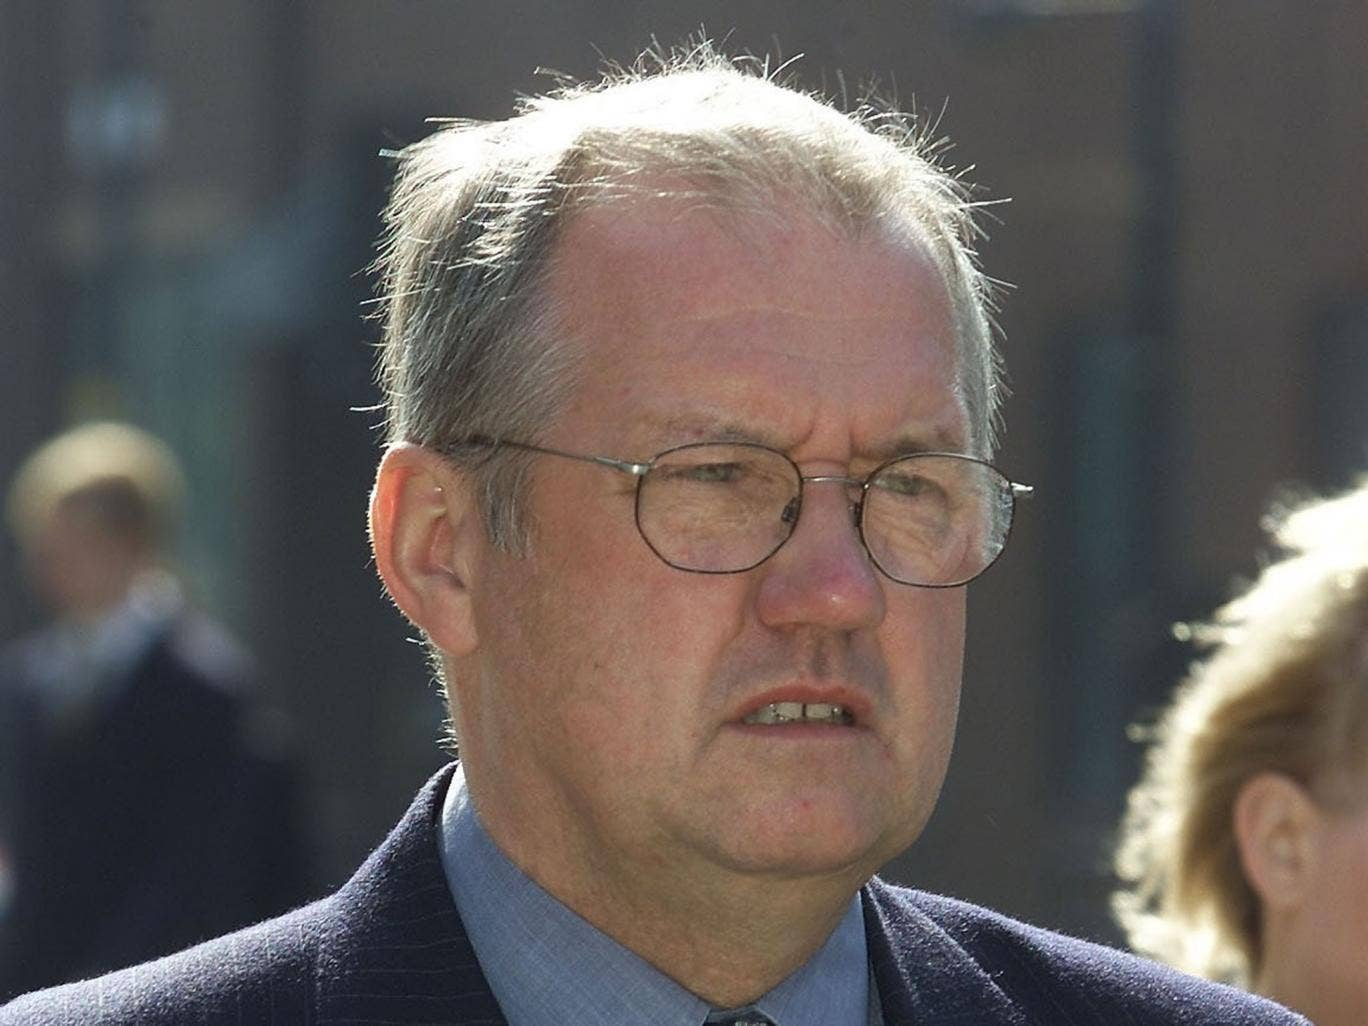 The jury has heard that match commander Ch Supt David Duckenfield ordered an exit gate at the ground to be opened